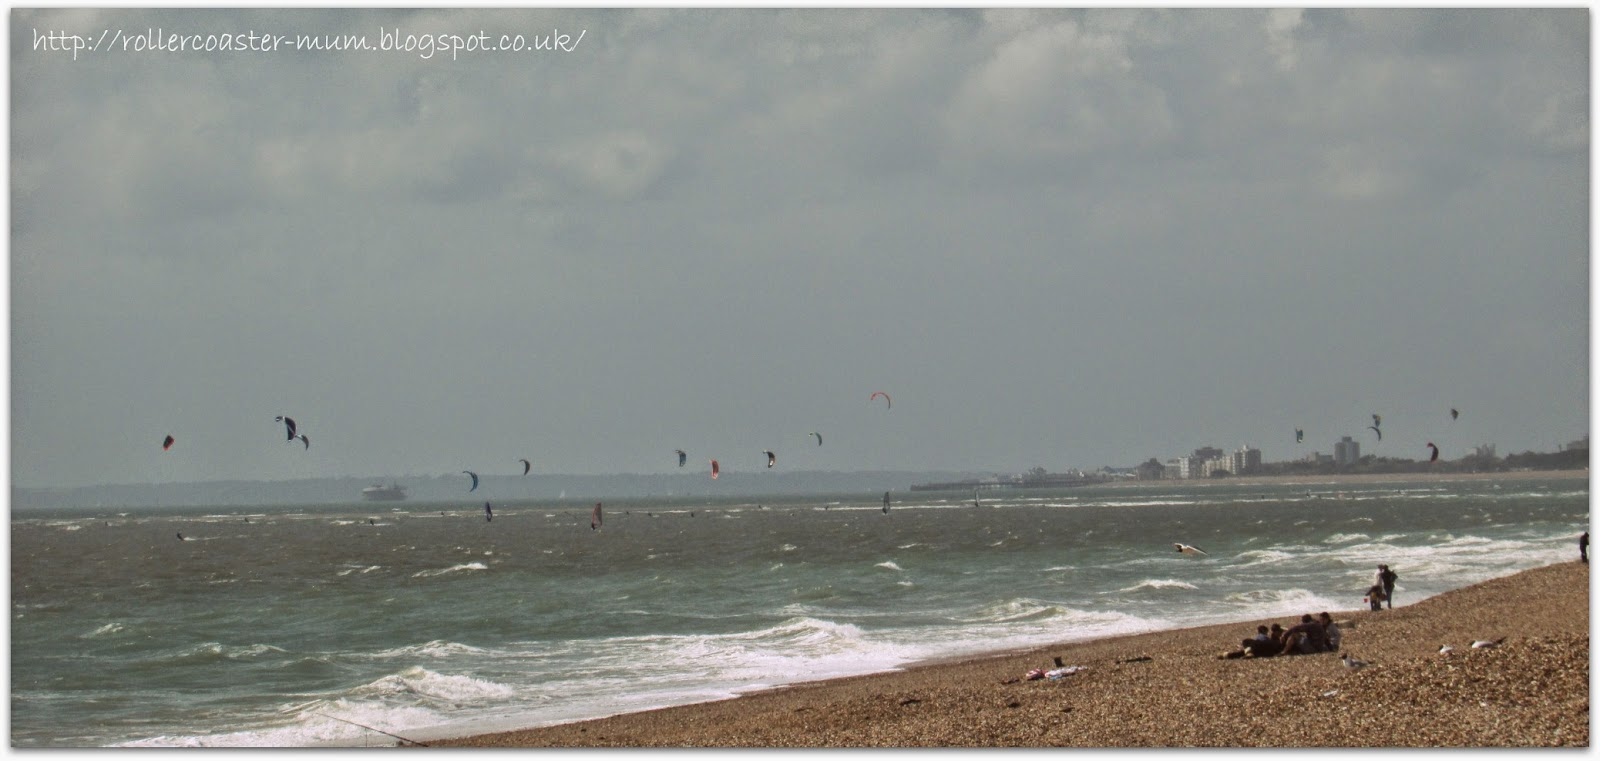 Kitesurfing from Hayling Island